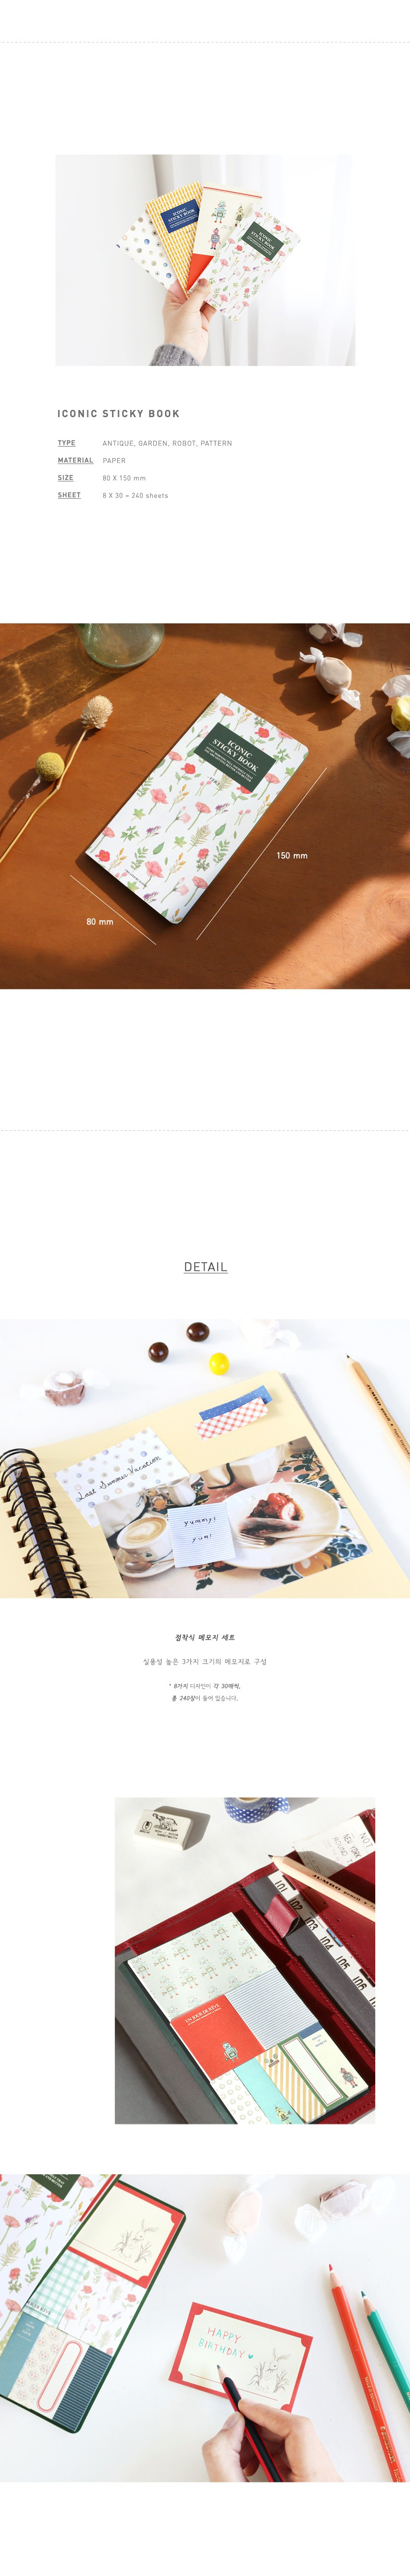 stationery shop uk [stationery shop uk, stationery uk, buy stationery online]